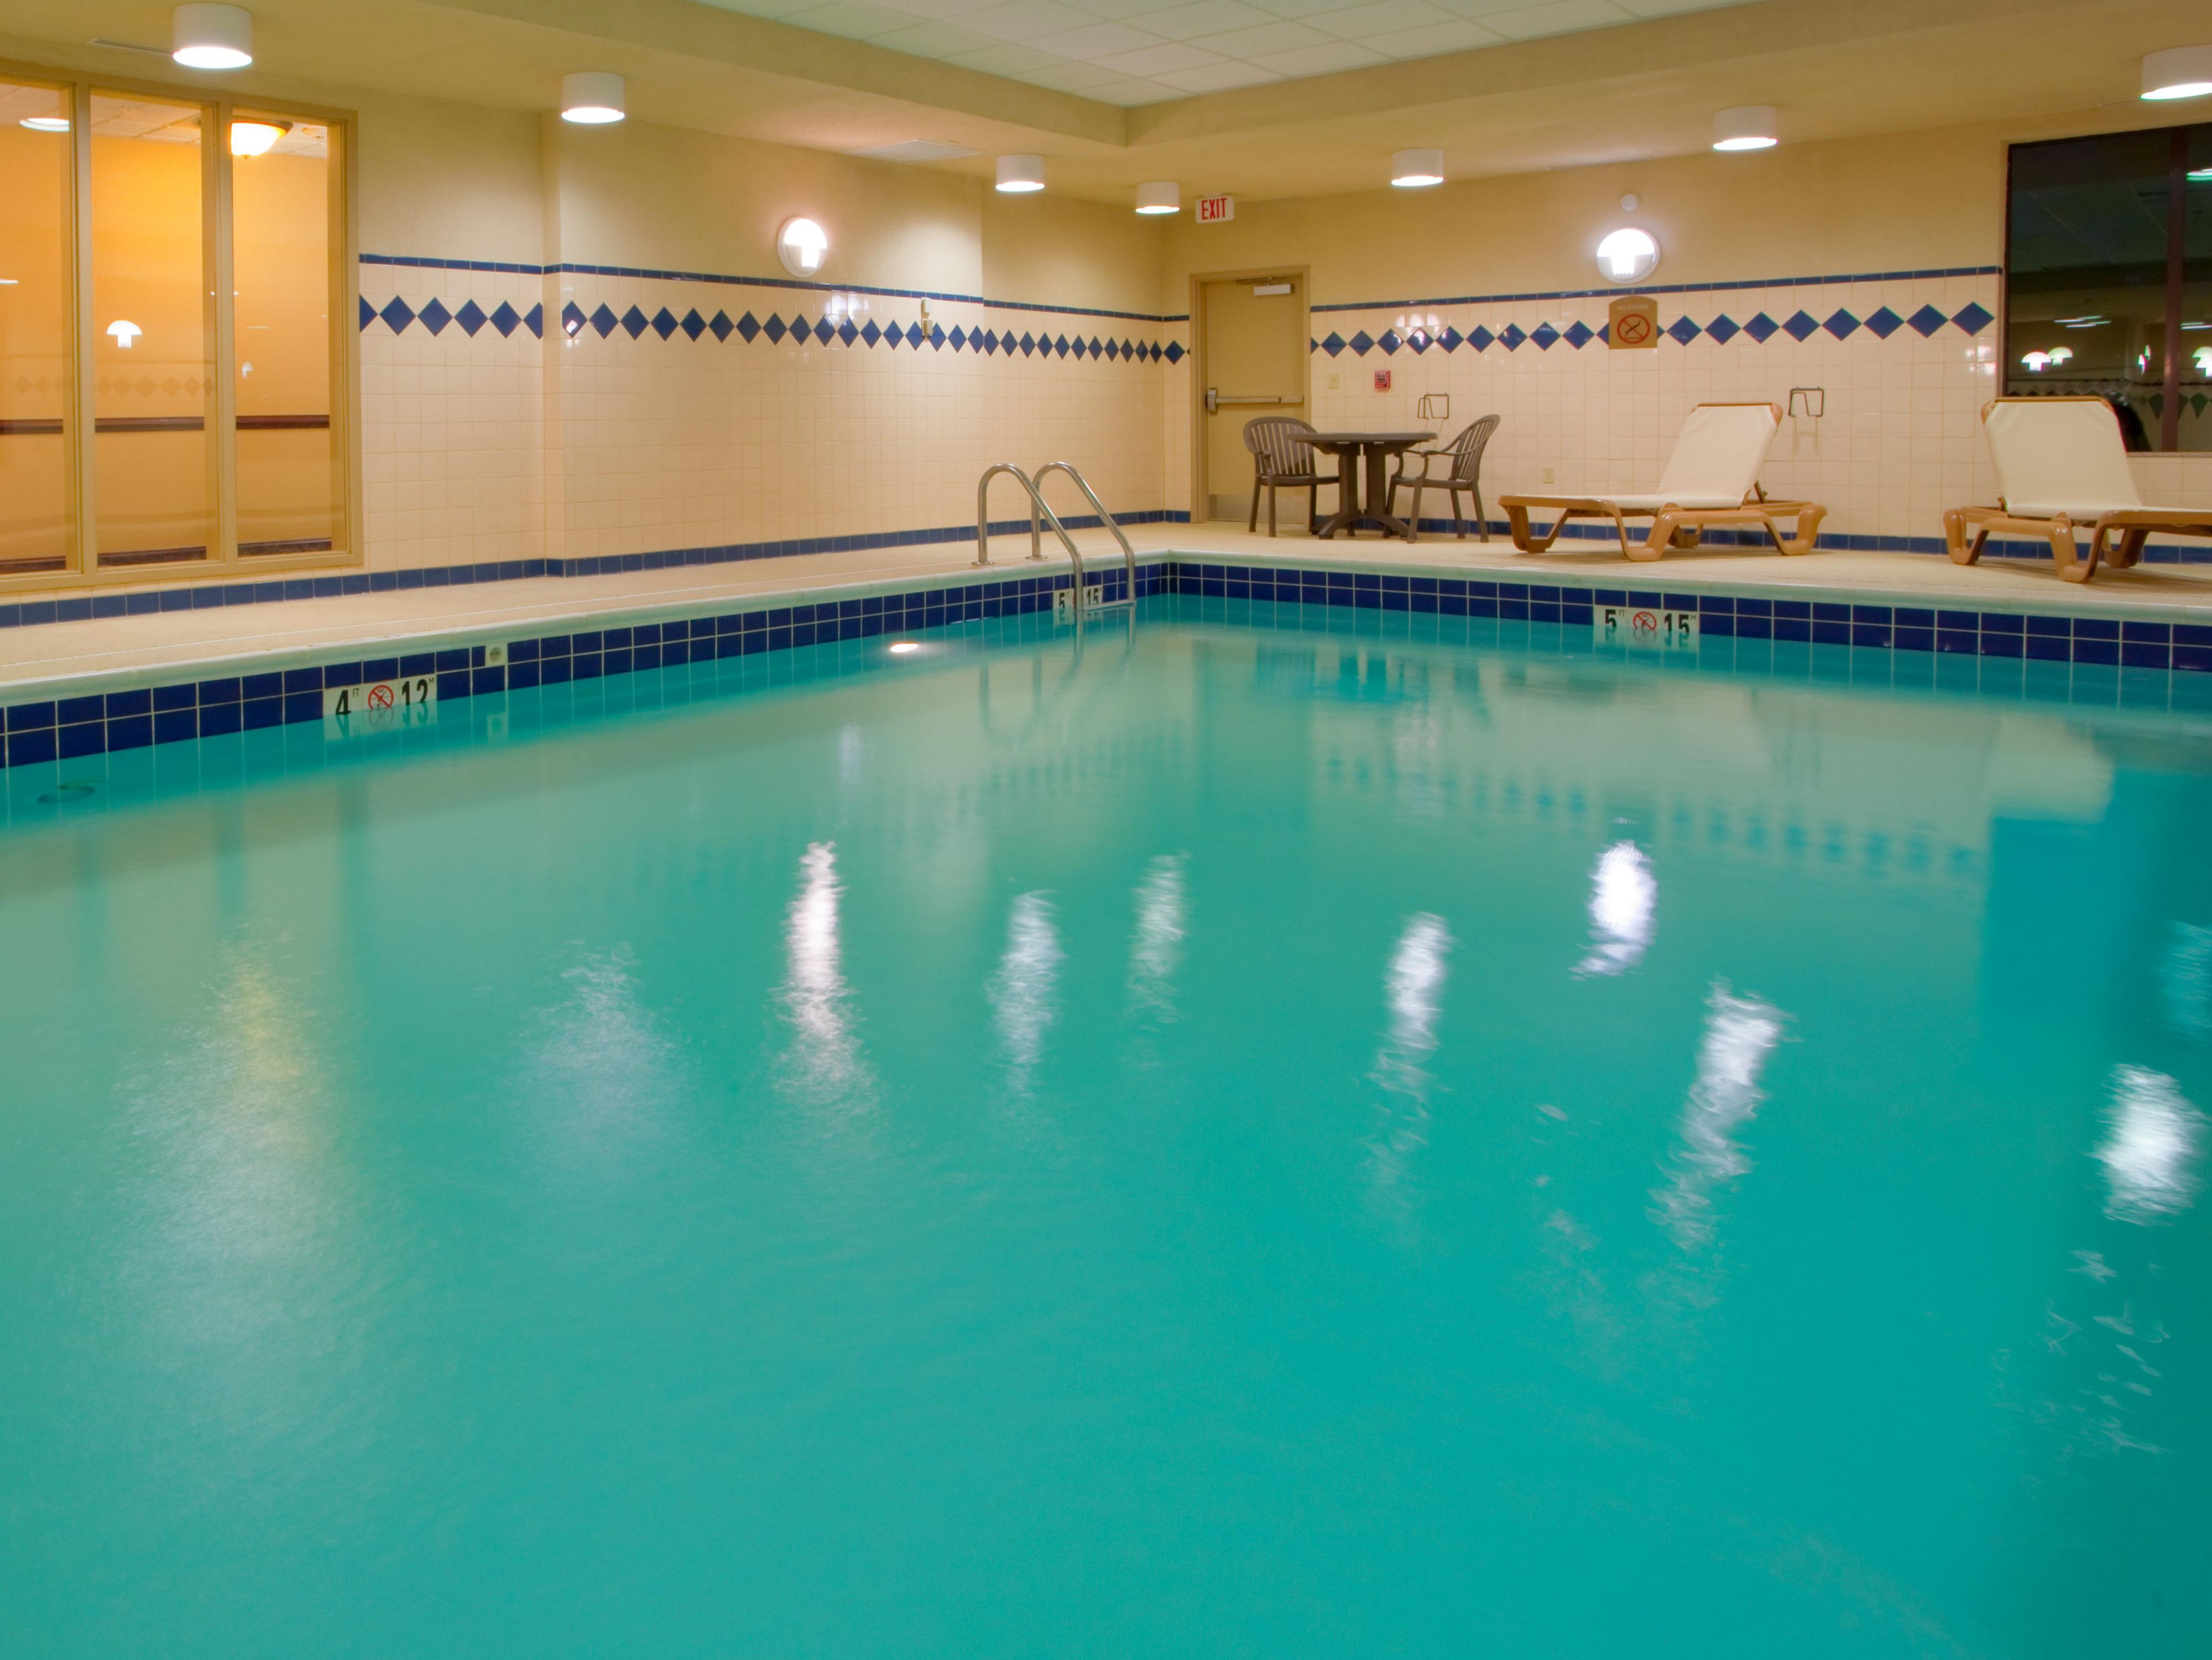 Our pool is heated during winter months for your comfort